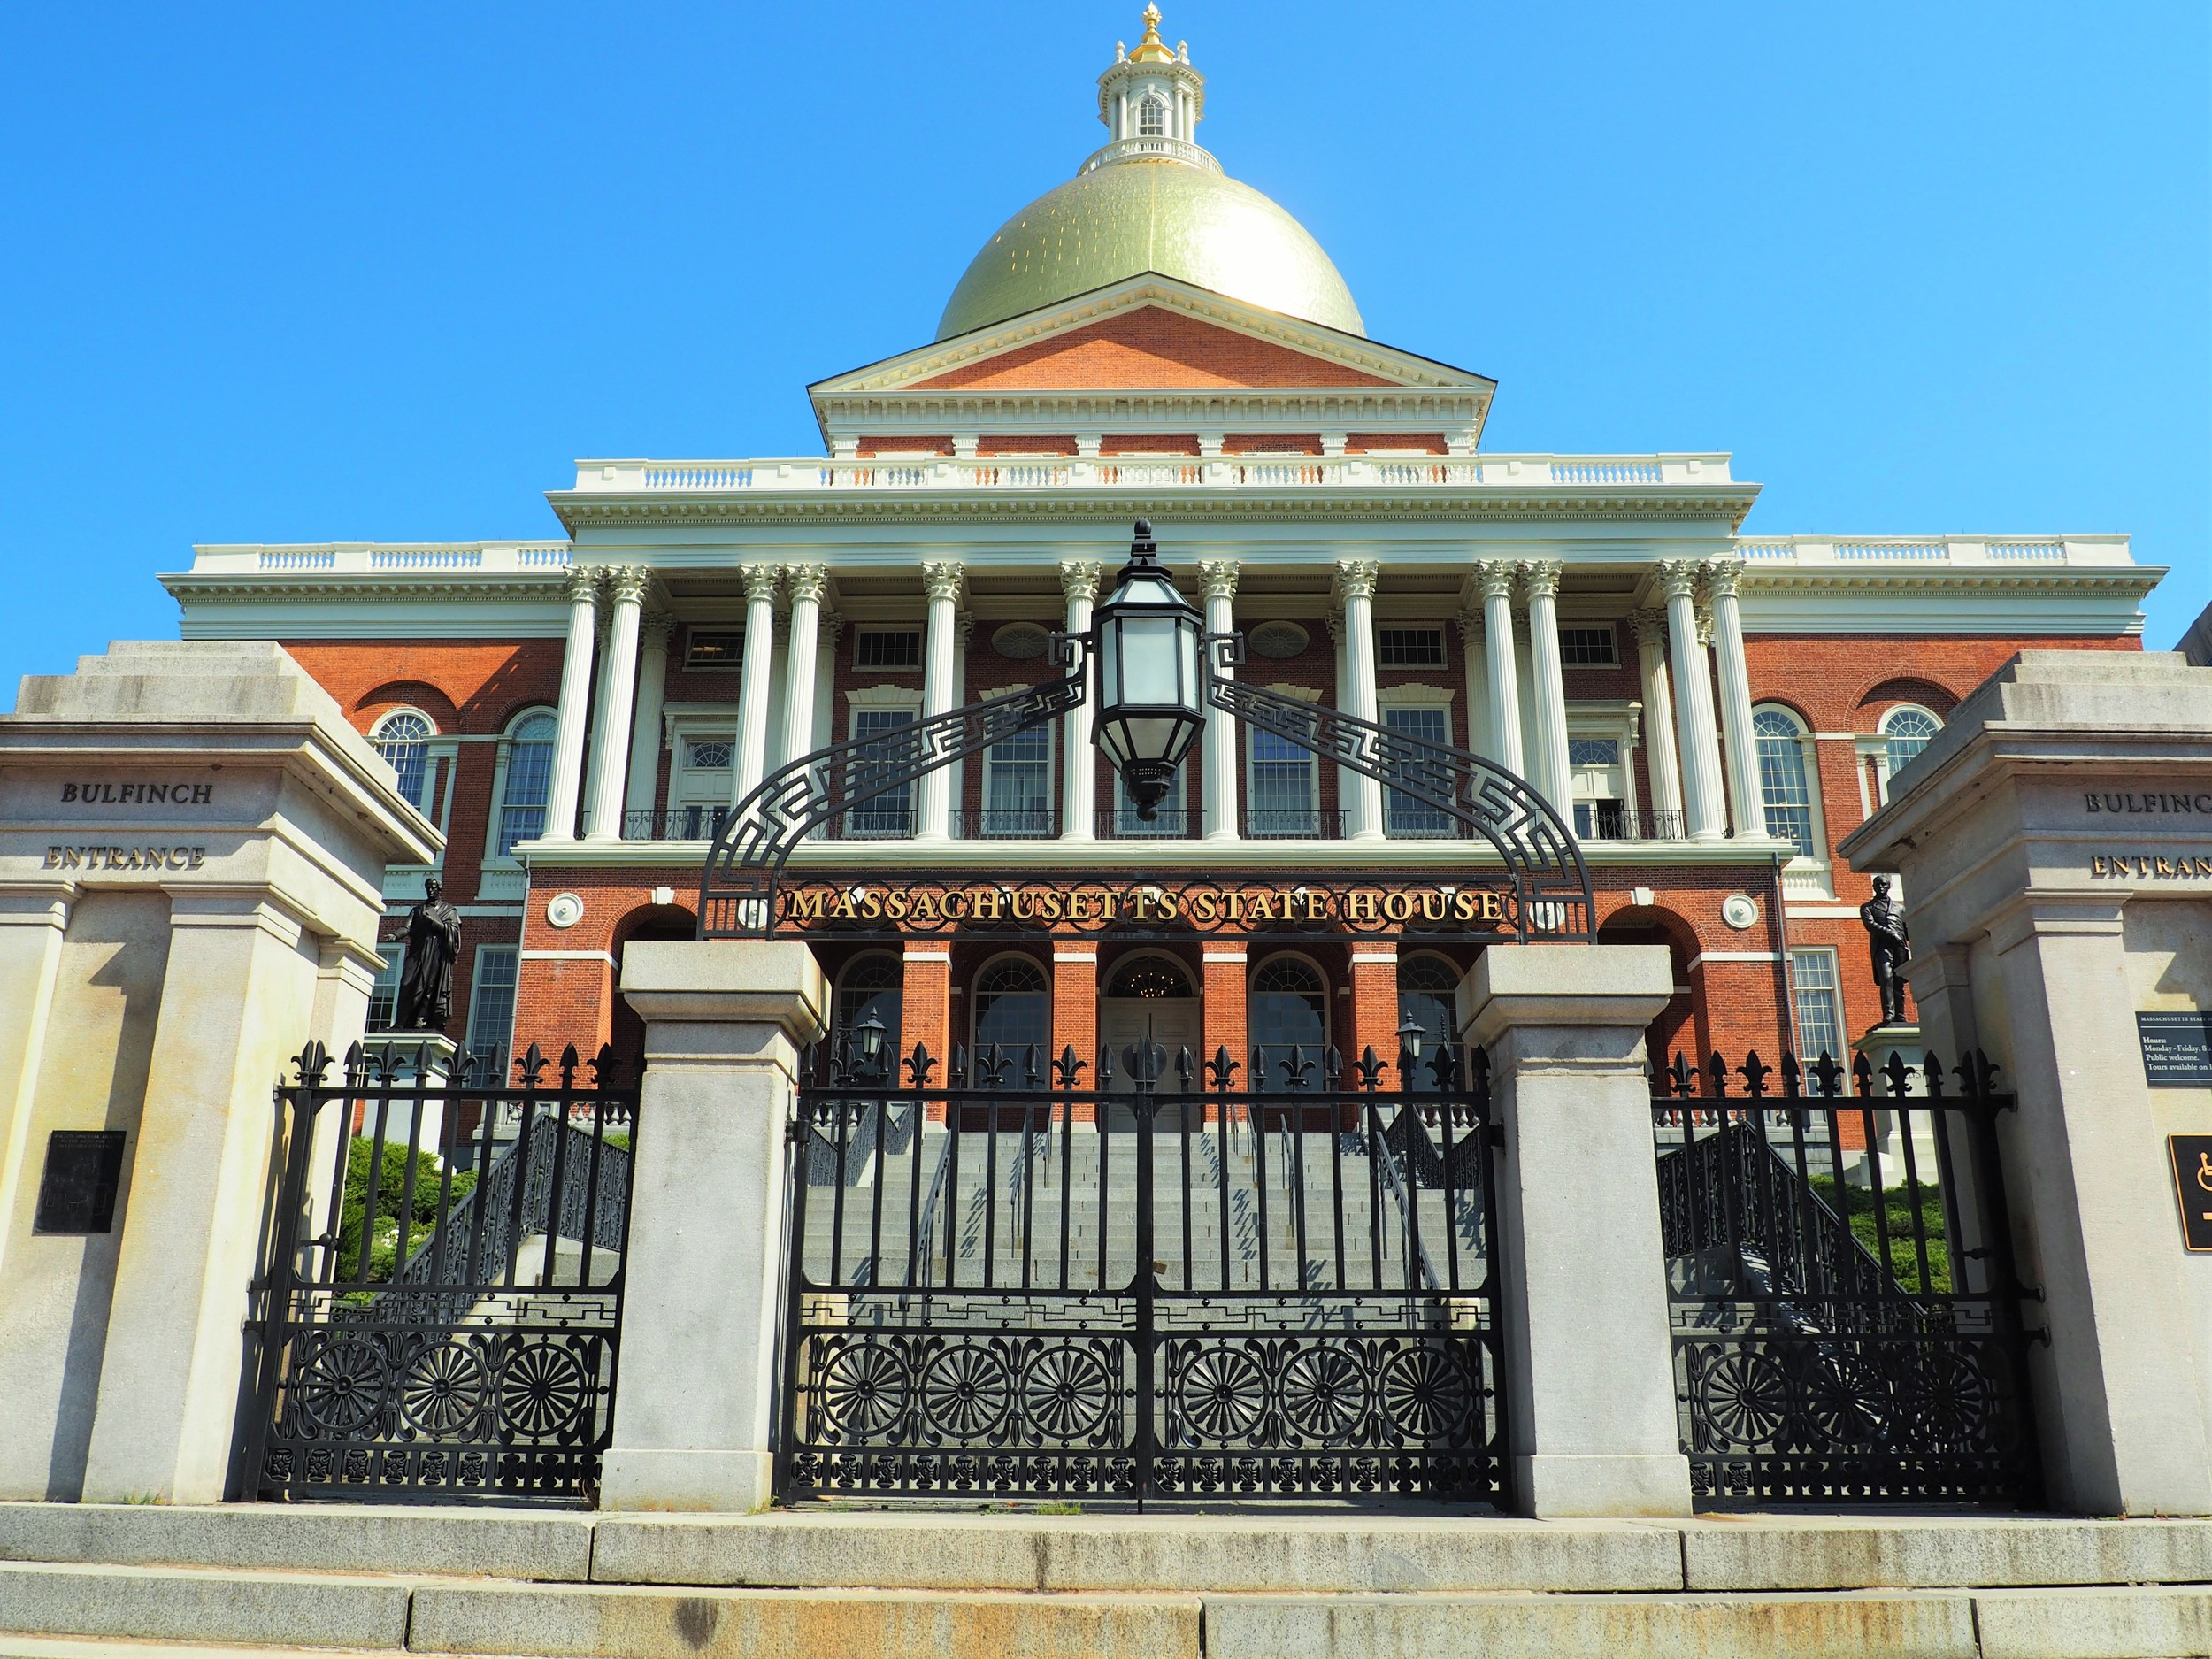 MassachusettsStateHouse.jpg